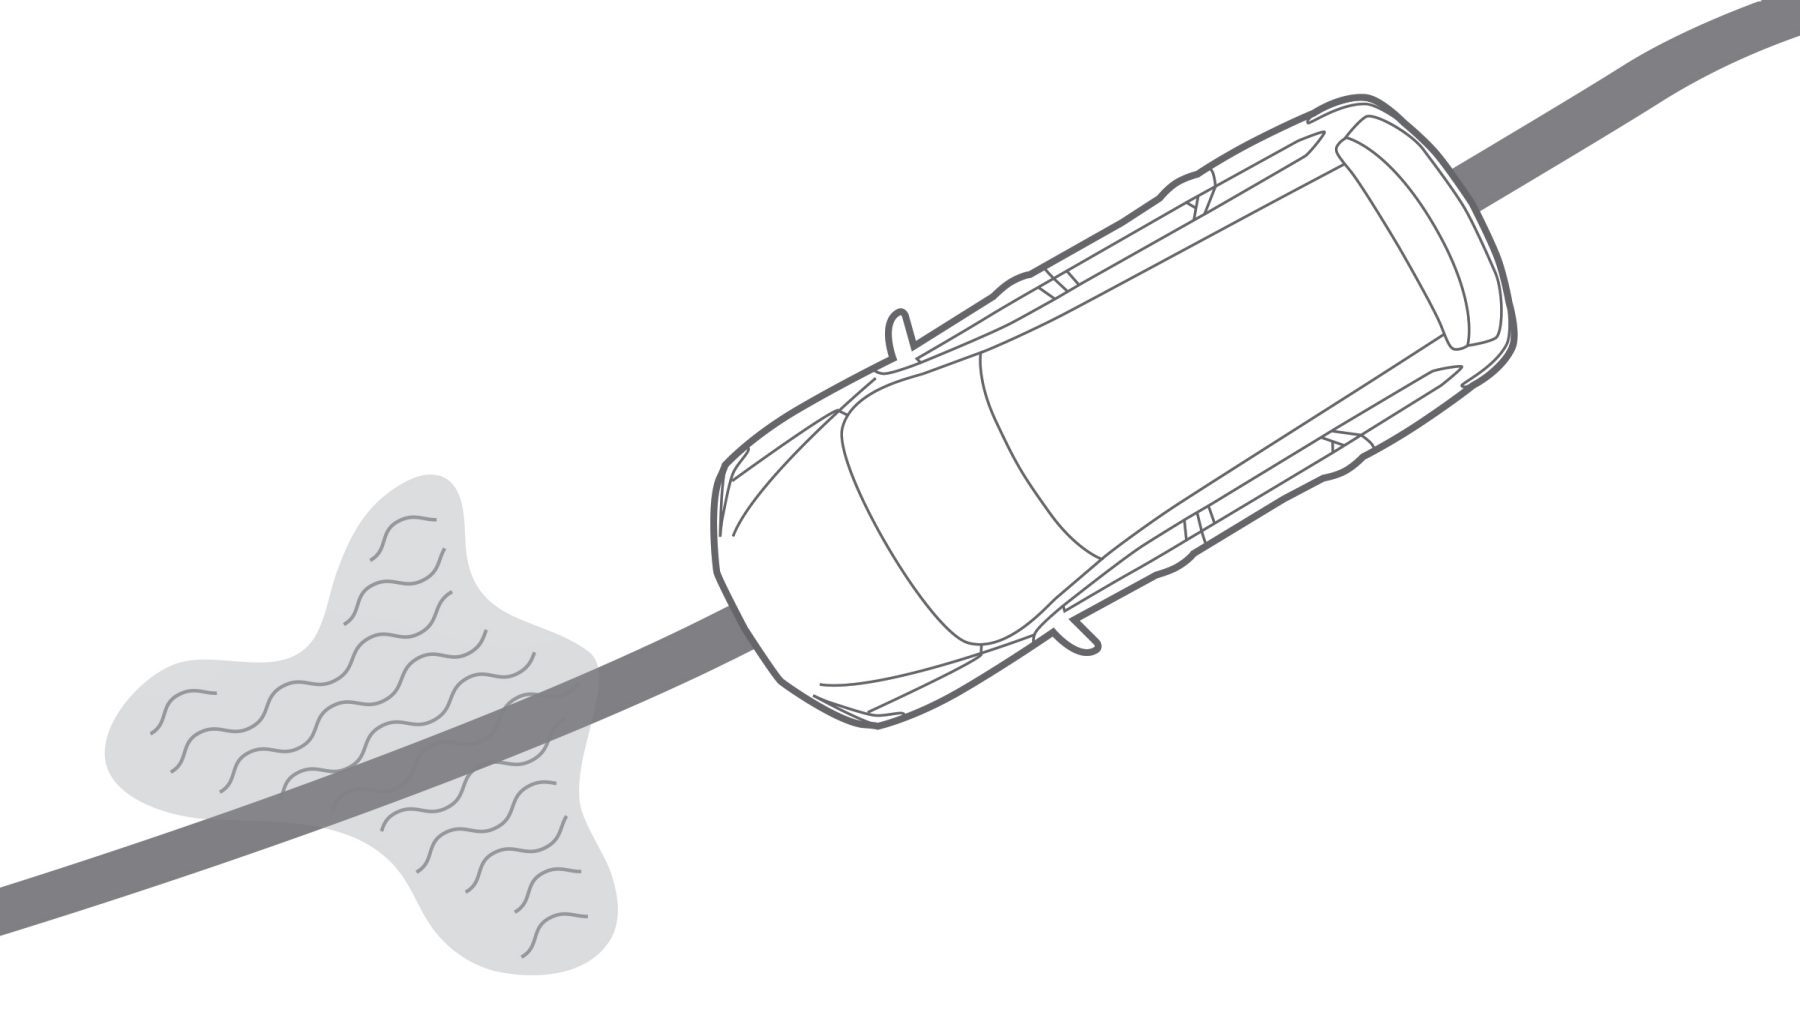 Nissan Traction Control System illustration of vehicle approaching wet spot in road